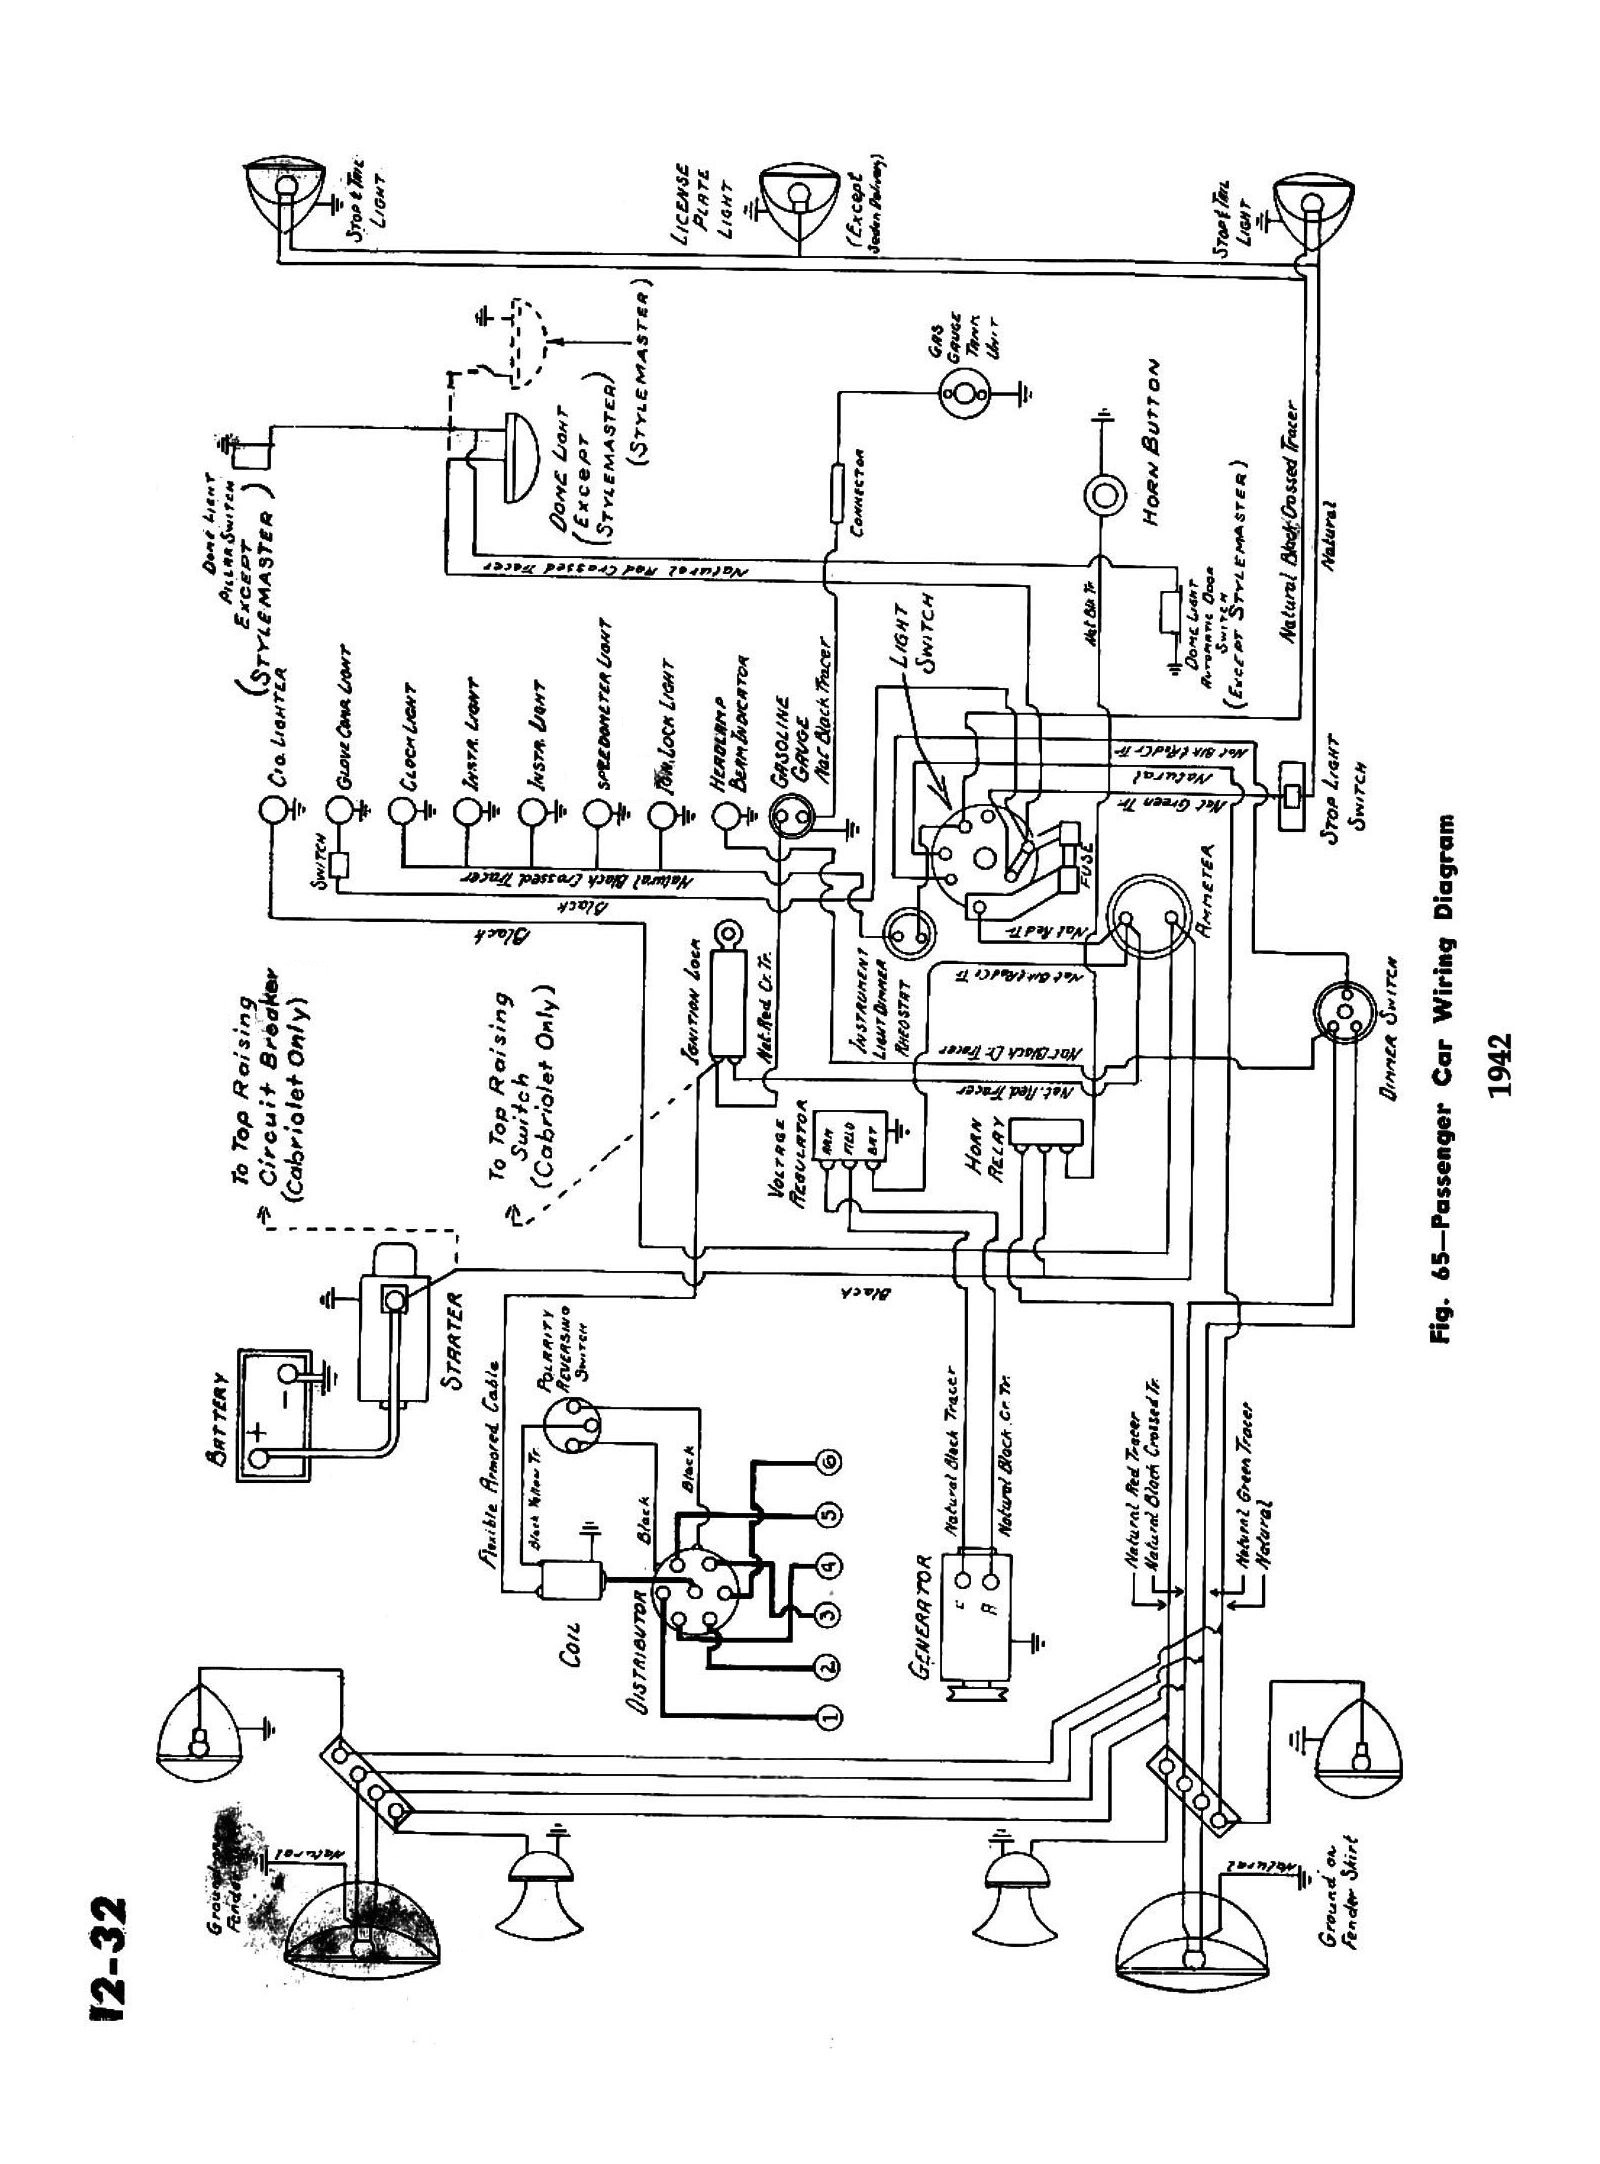 48 Chevy Wiring Diagram Library 2008 Chevrolet Avalanche Seven Wire Trailer Towing Harness Diagrams